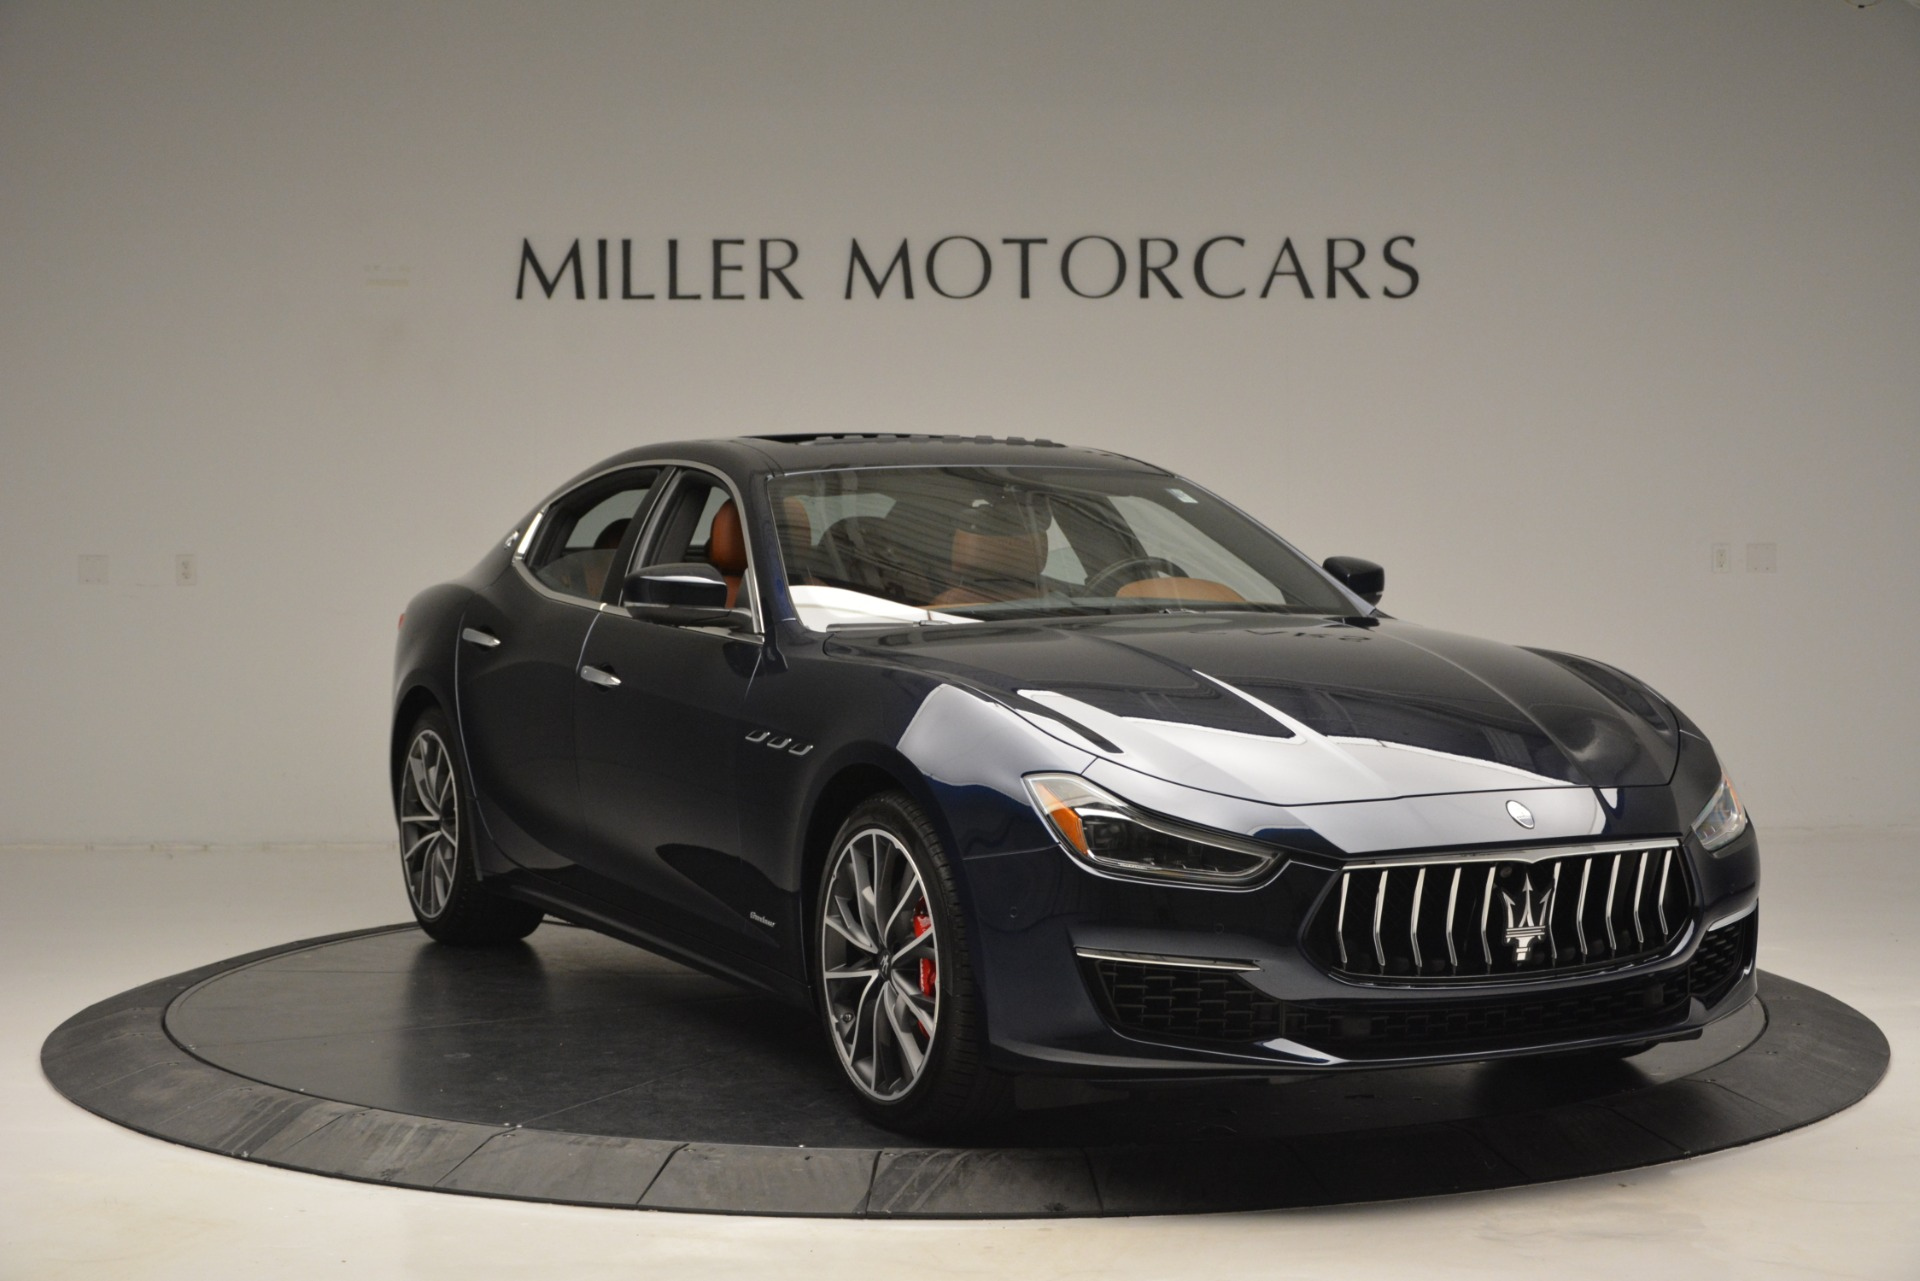 New 2019 Maserati Ghibli S Q4 GranSport For Sale In Westport, CT 2948_p16